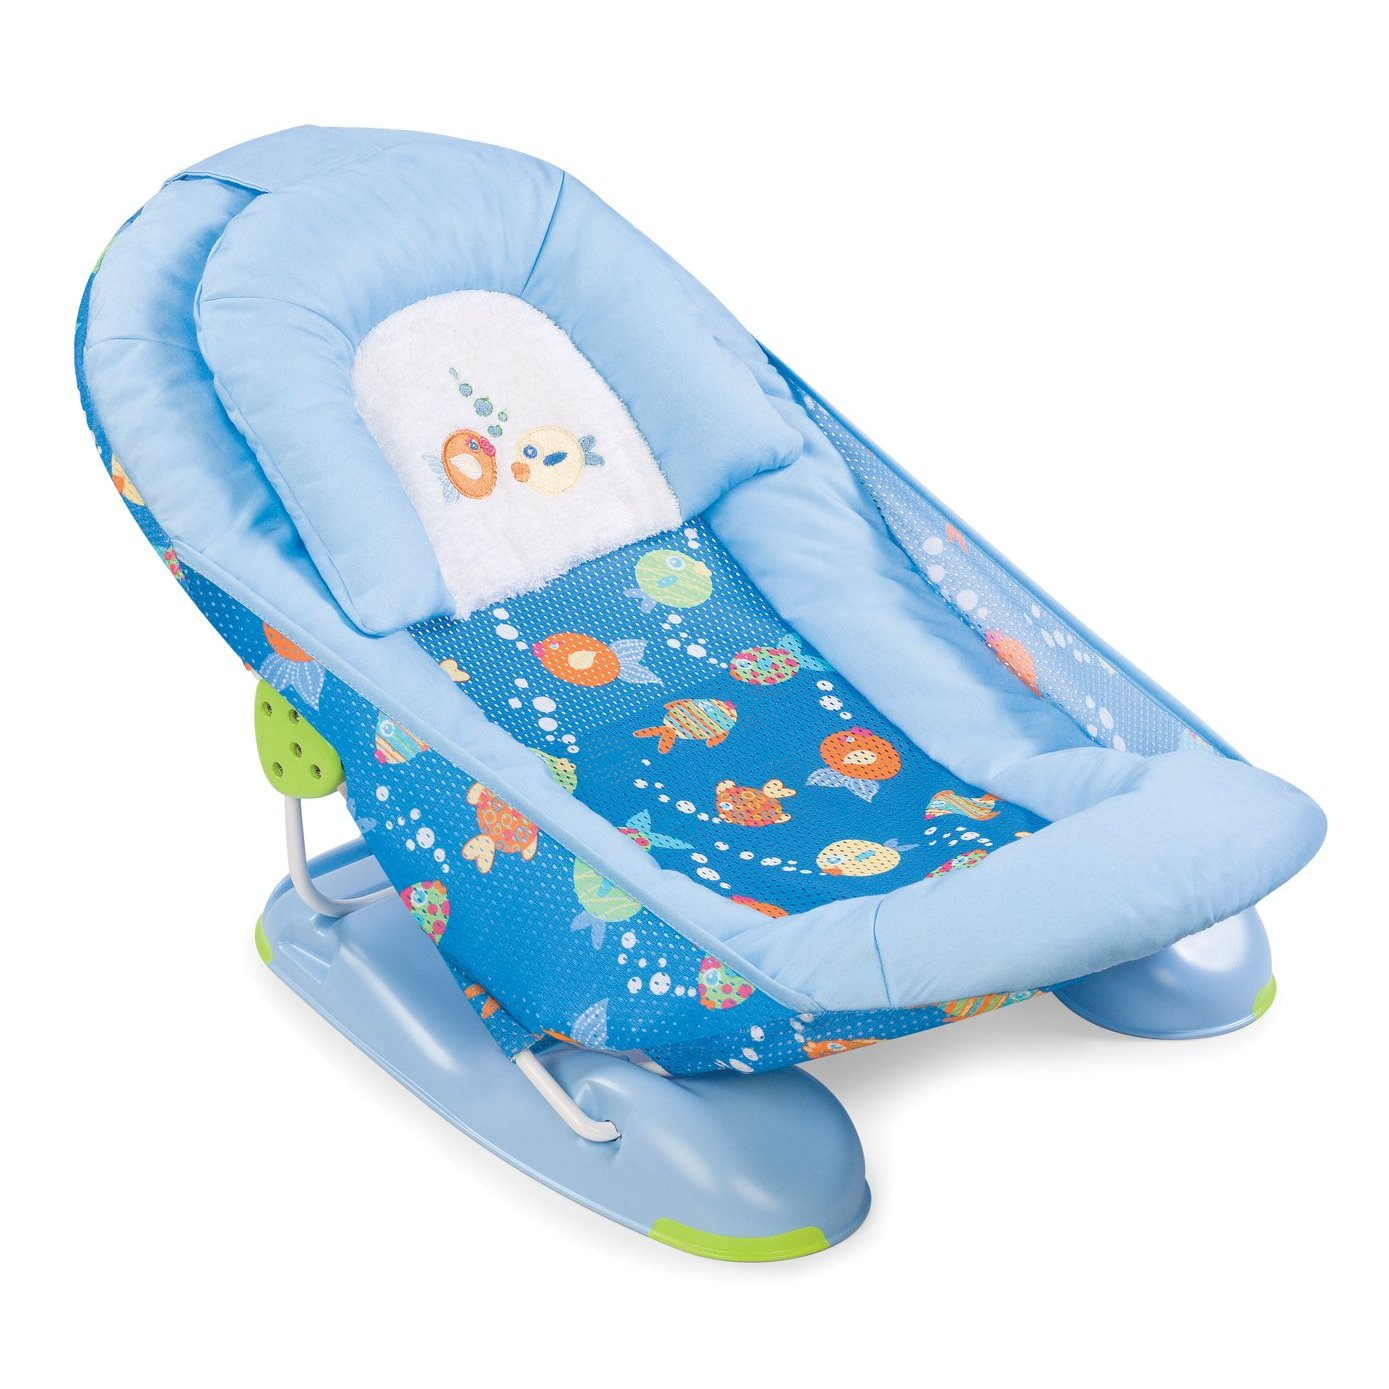 Boppy Baby Chair Chairs Office Max Moving Sale: Sold - Brand New Summer Infant Bath Seat $10